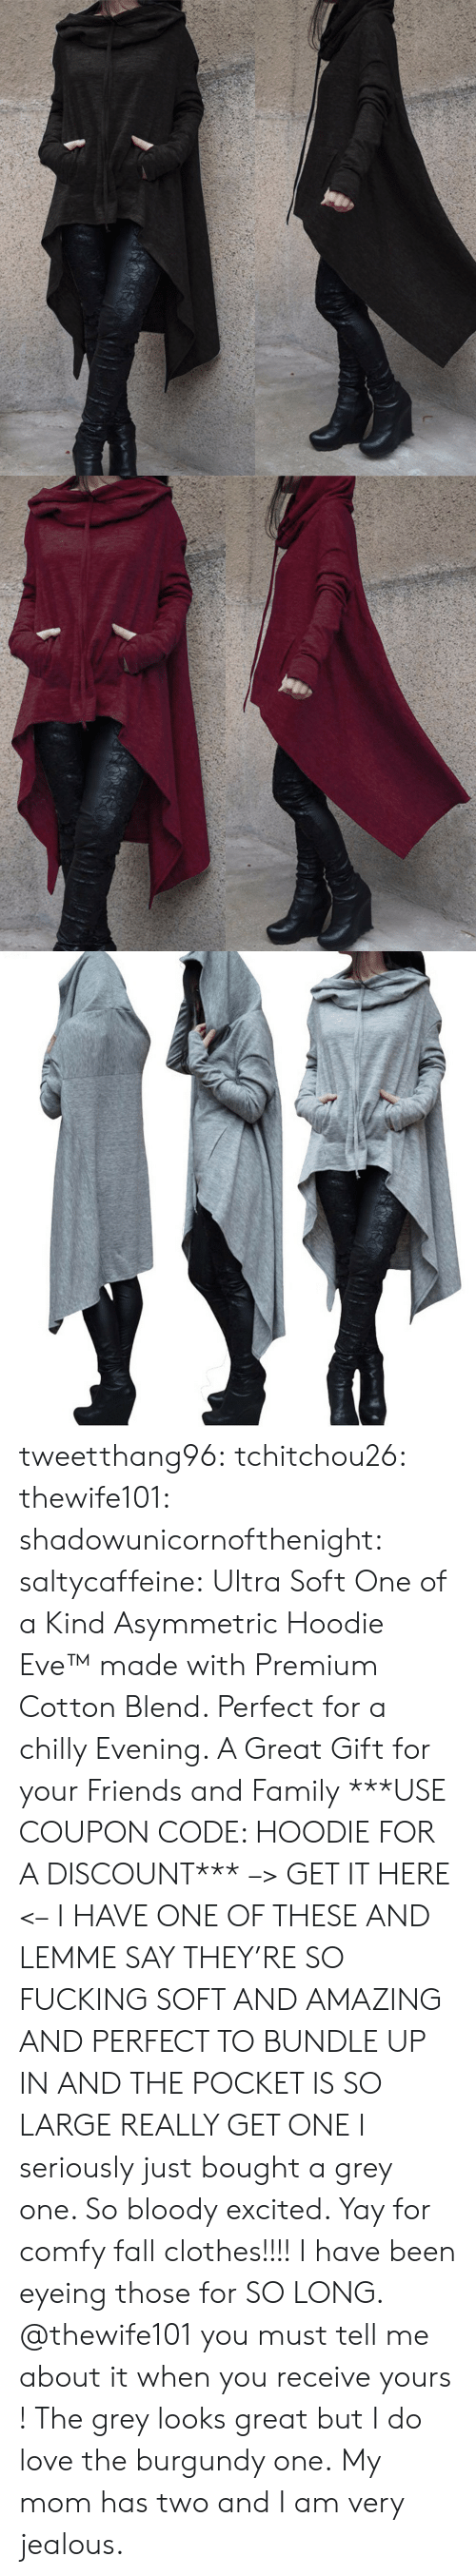 bundle up: tweetthang96:  tchitchou26: thewife101:  shadowunicornofthenight:  saltycaffeine:  Ultra Soft One of a Kind Asymmetric Hoodie Eve™made with Premium Cotton Blend. Perfect for a chilly Evening. A Great Gift for your Friends and Family ***USE COUPON CODE: HOODIE FOR A DISCOUNT*** –> GET IT HERE <–   I HAVE ONE OF THESE AND LEMME SAY THEY'RE SO FUCKING SOFT AND AMAZING AND PERFECT TO BUNDLE UP IN AND THE POCKET IS SO LARGE REALLY GET ONE   I seriously just bought a grey one. So bloody excited. Yay for comfy fall clothes!!!!   I have been eyeing those for SO LONG. @thewife101 you must tell me about it when you receive yours ! The grey looks great but I do love the burgundy one.   My mom has two and I am very jealous.